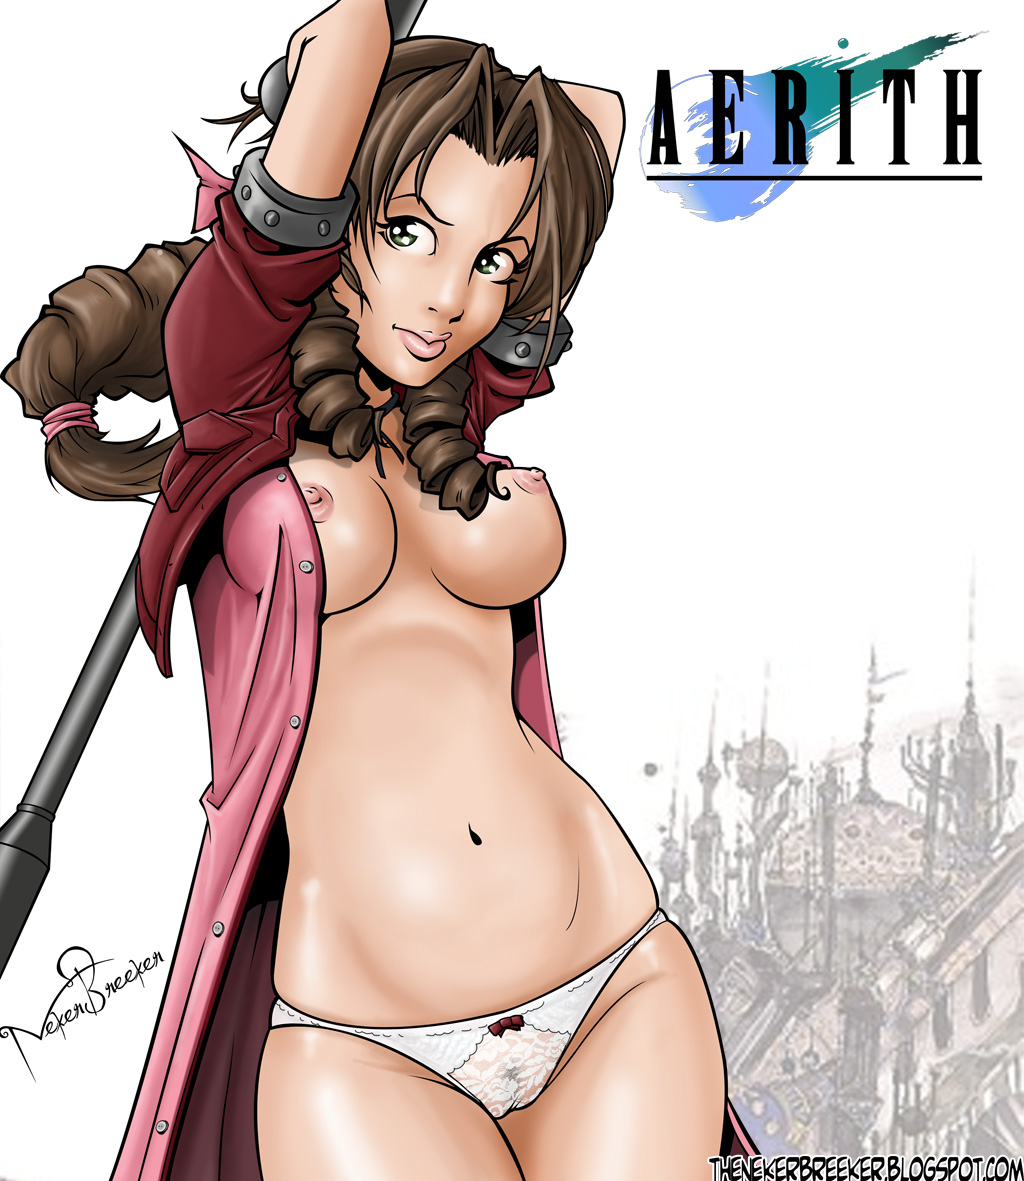 Aerith porn images nude sister